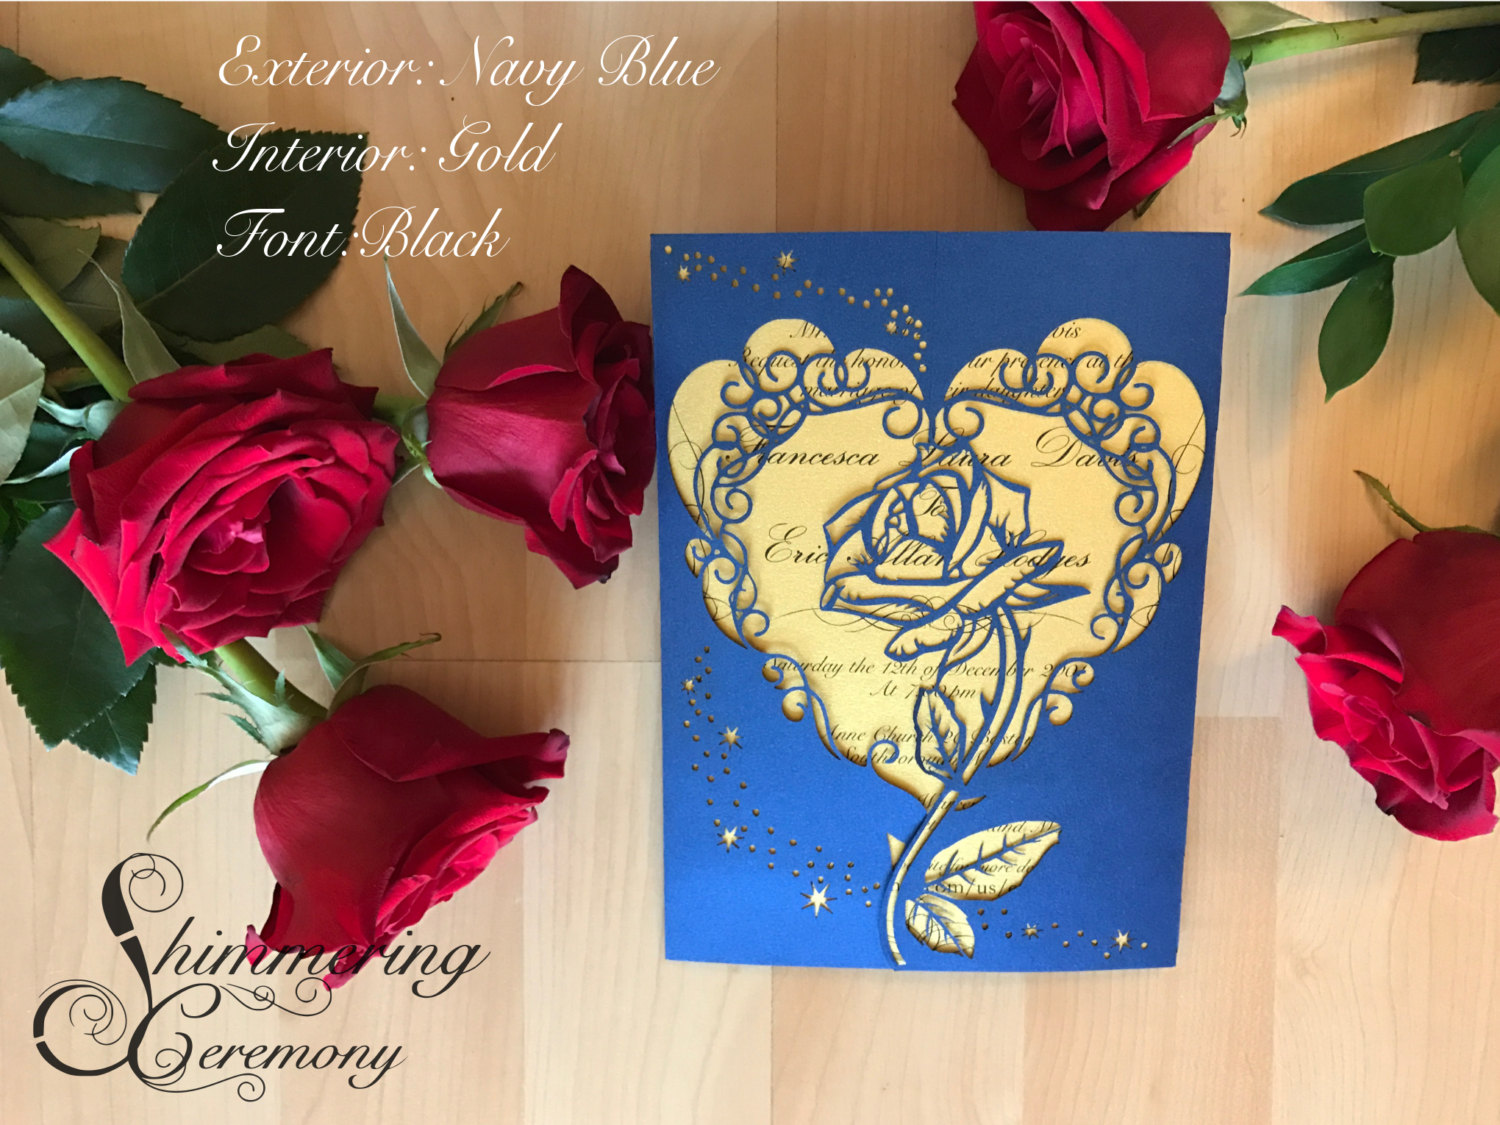 Beauty And The Beast Themed Wedding Invitations: Beauty And The Beast Inspired Rose Gate Invitation